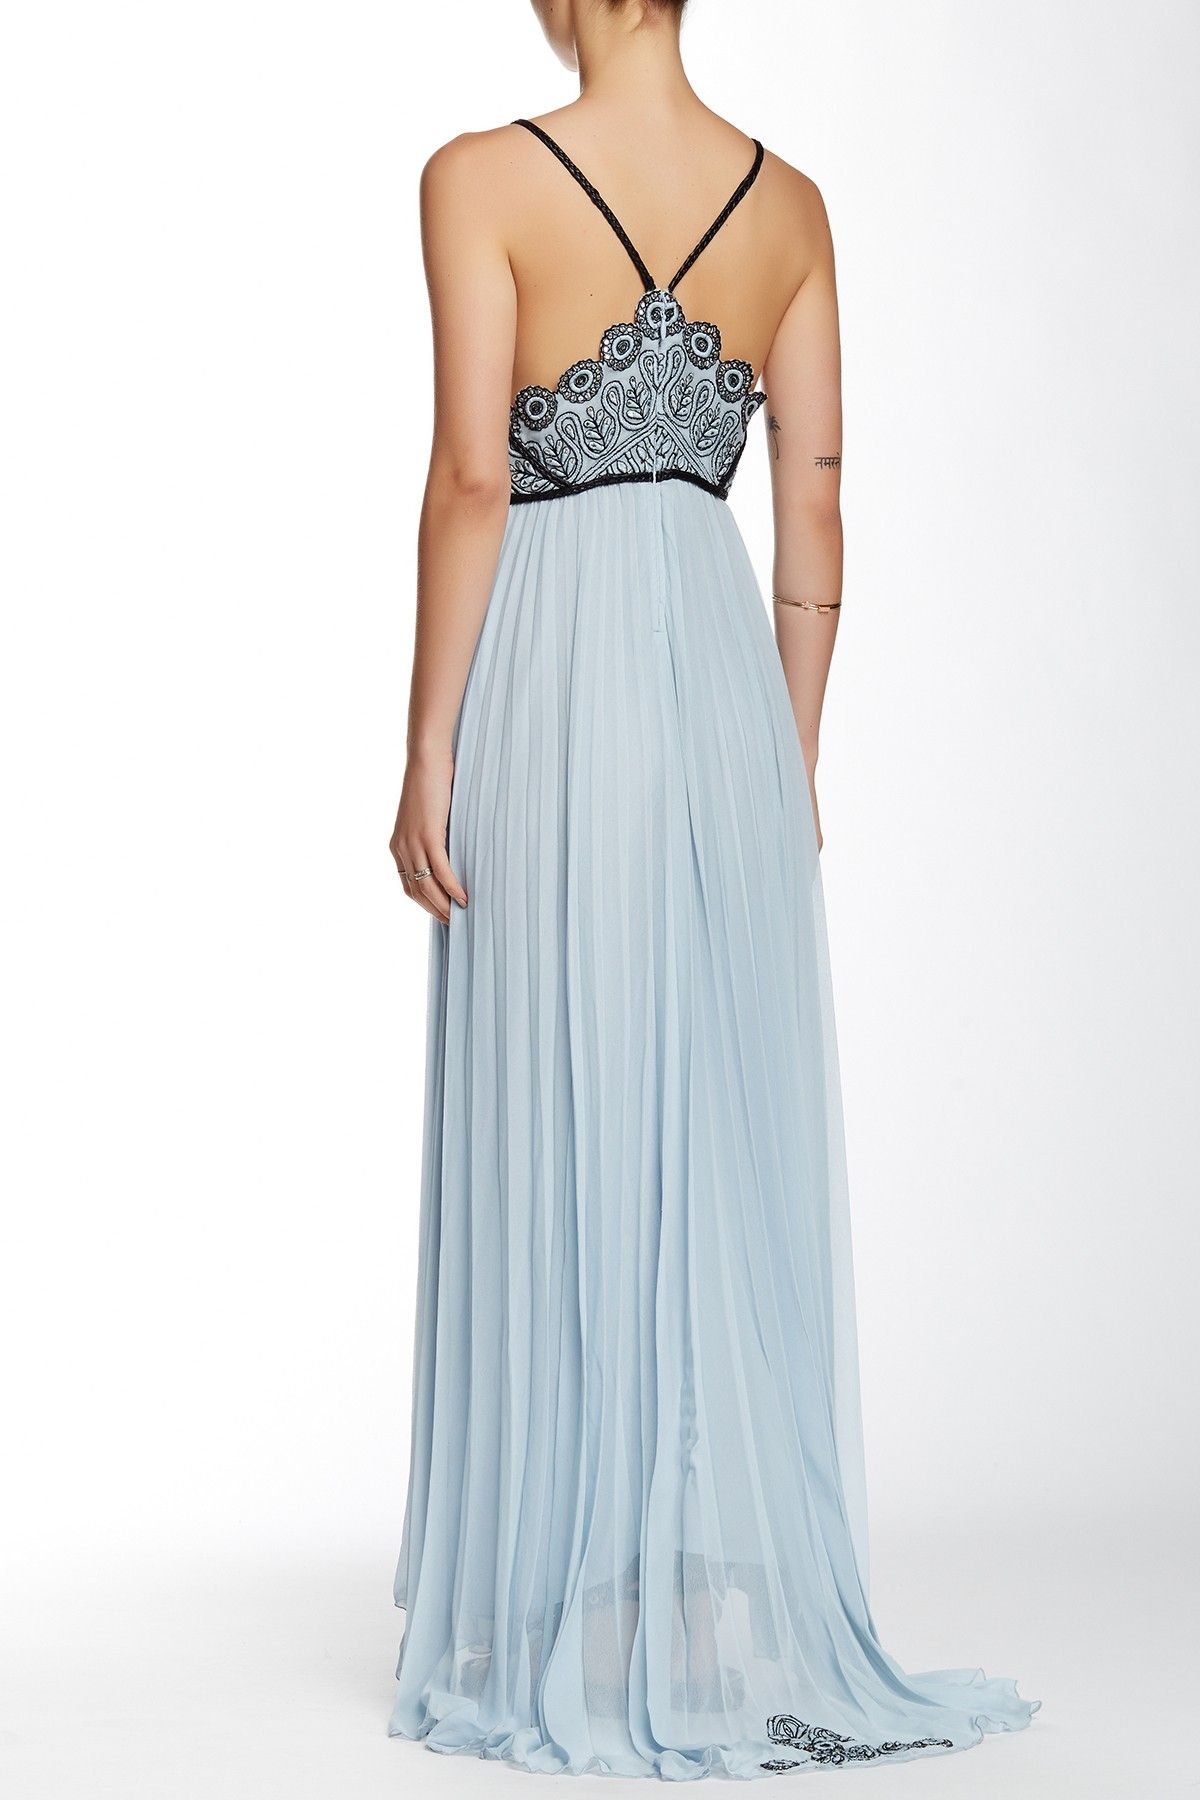 Belle Of The Ball Genuine Leather Trim Maxi Dress   Free people ...